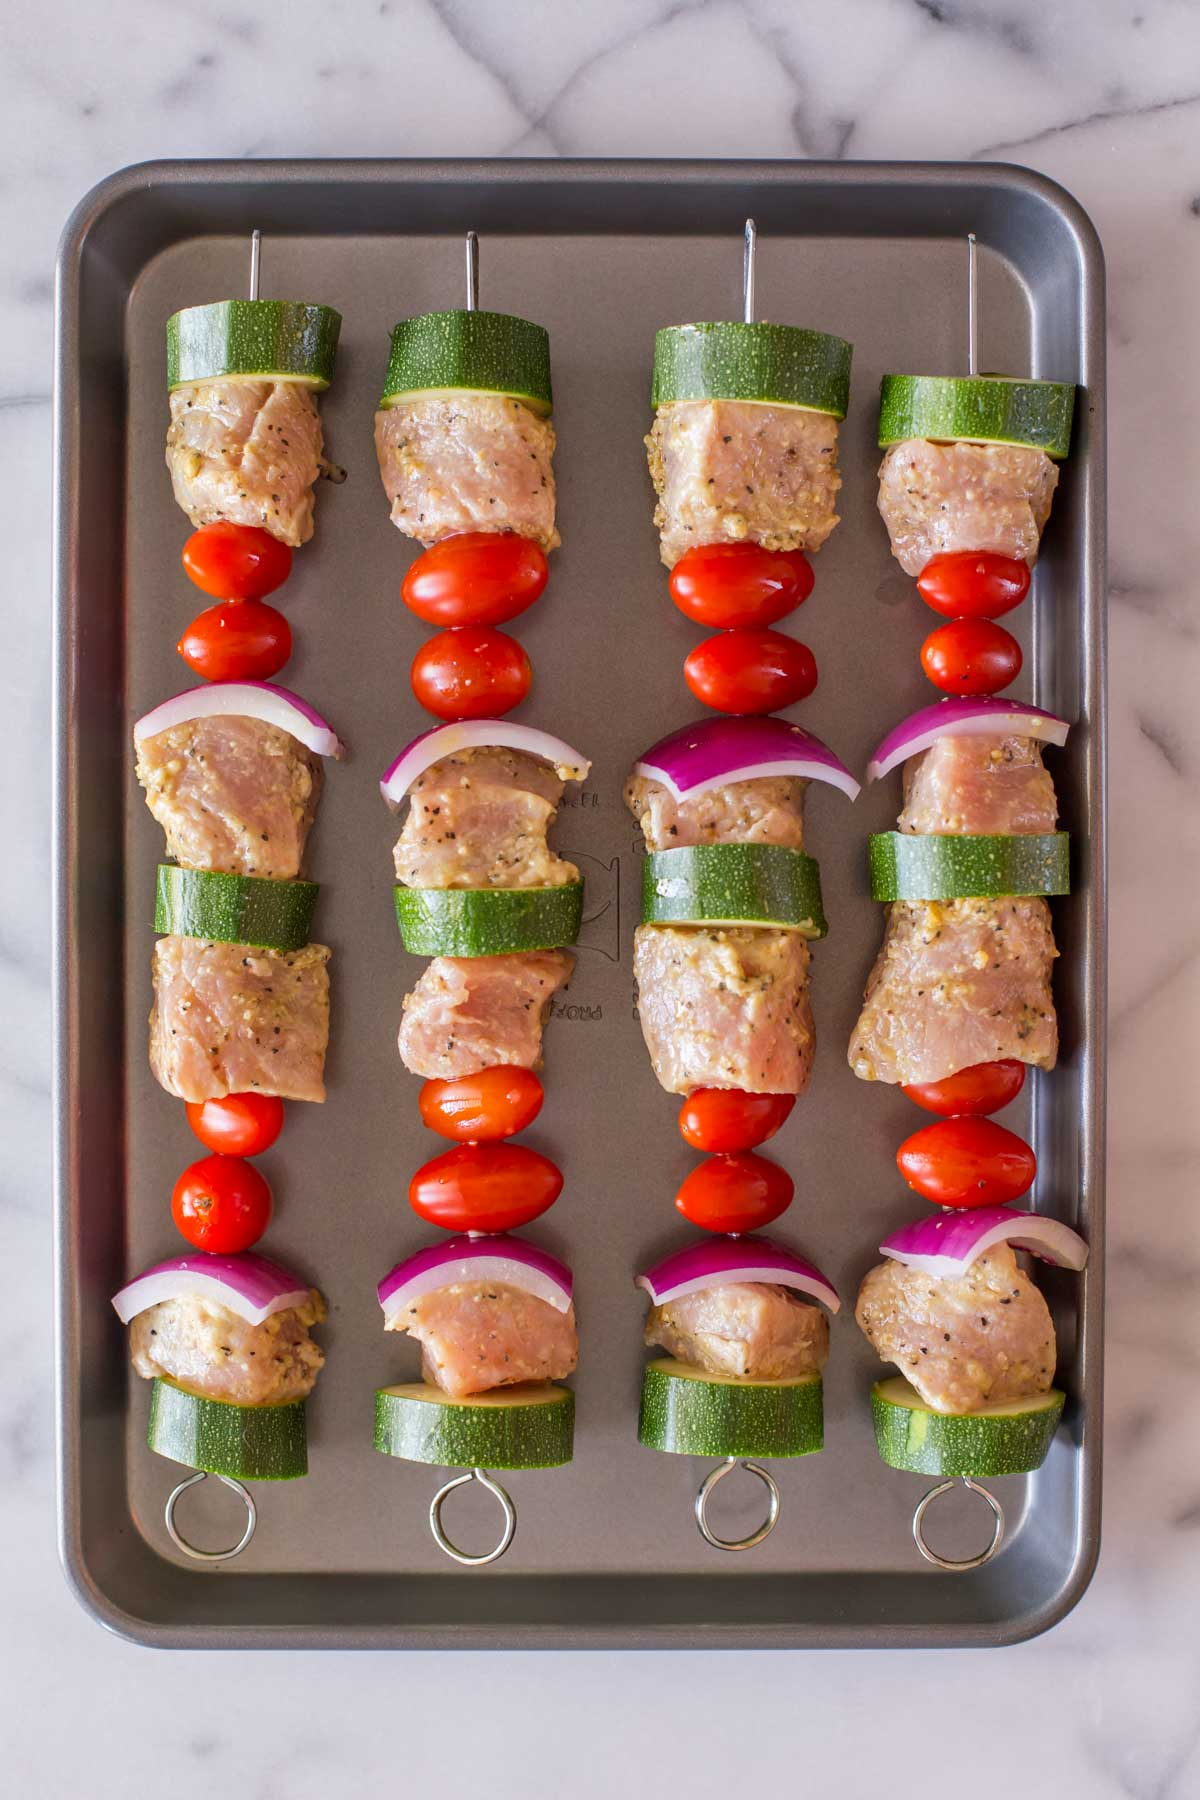 A new quick and easy summertime favorite inspired by the Sargento Chopped at Home Challenge.